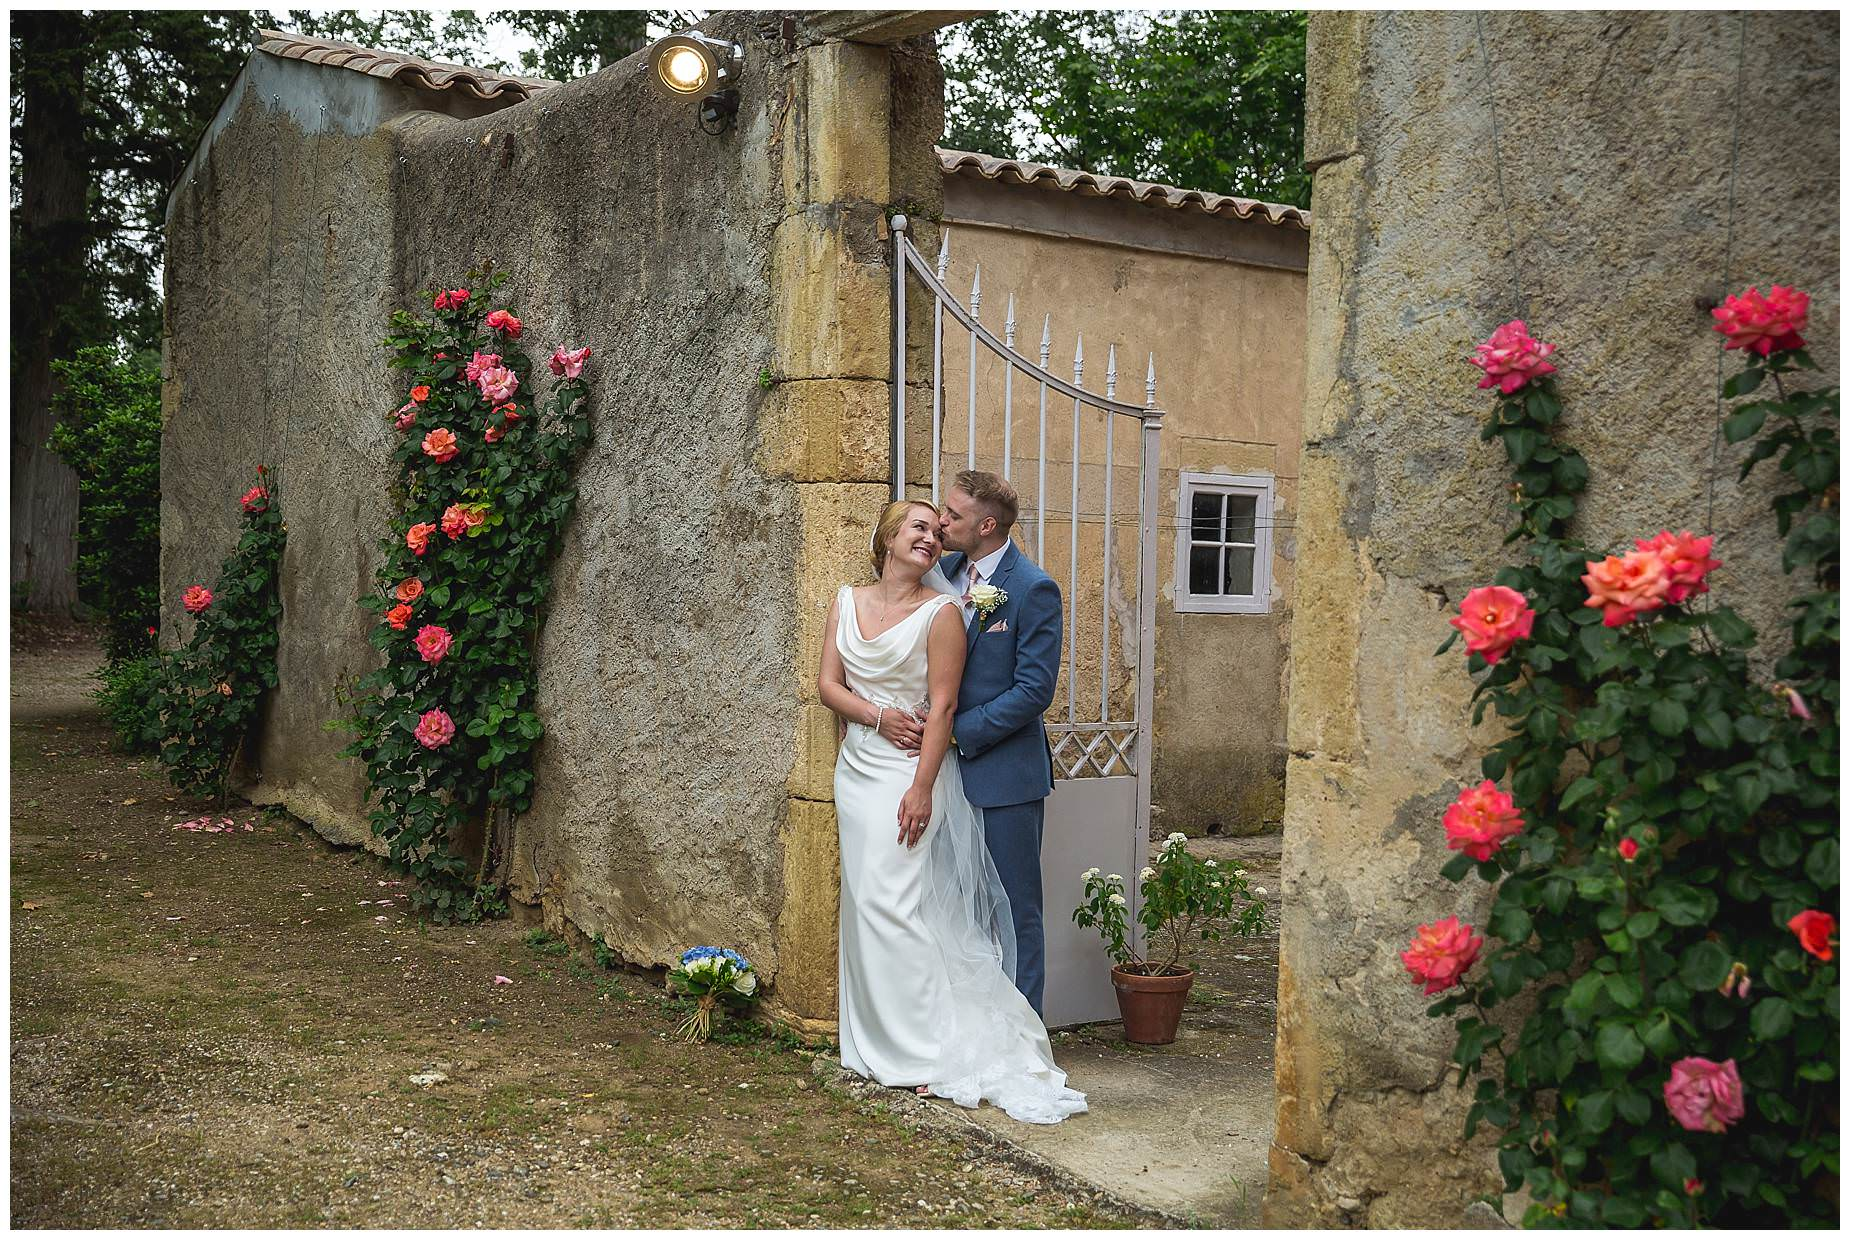 bride and groom pictures Chateau Roquelune Wedding